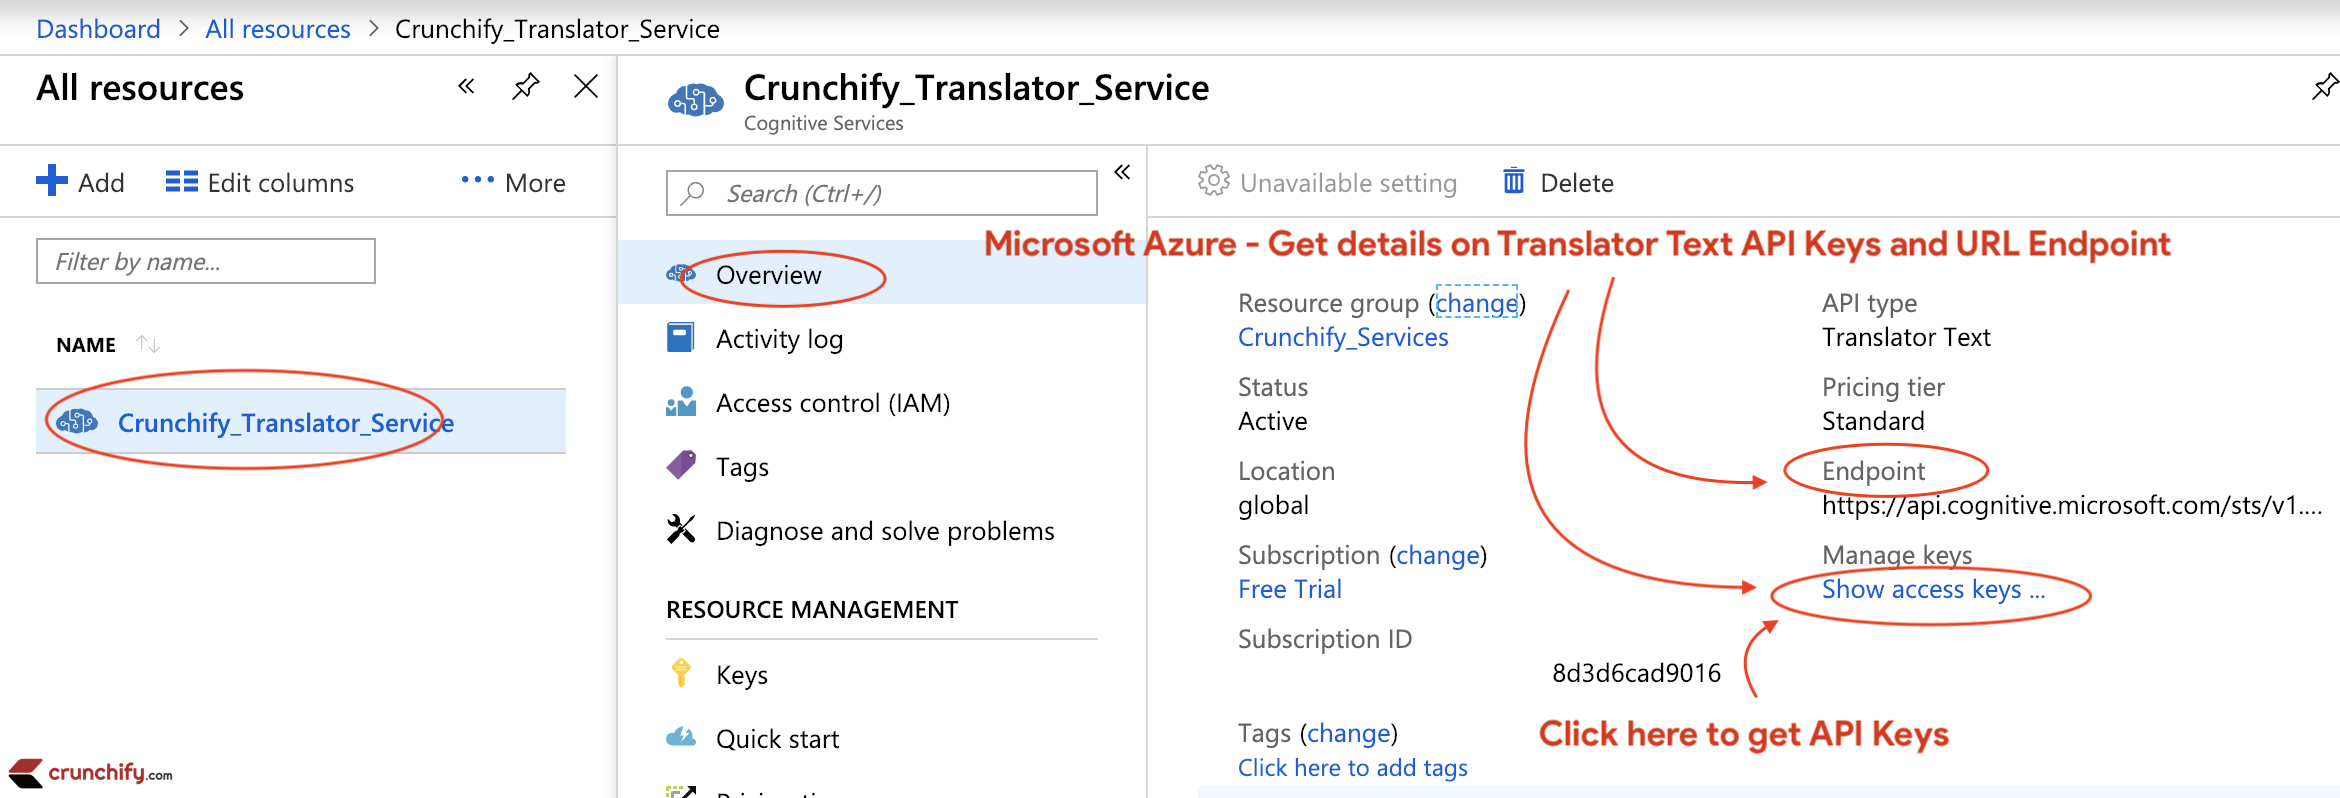 Microsoft Azure - Get details on Translator Text API Keys and URL Endpoint